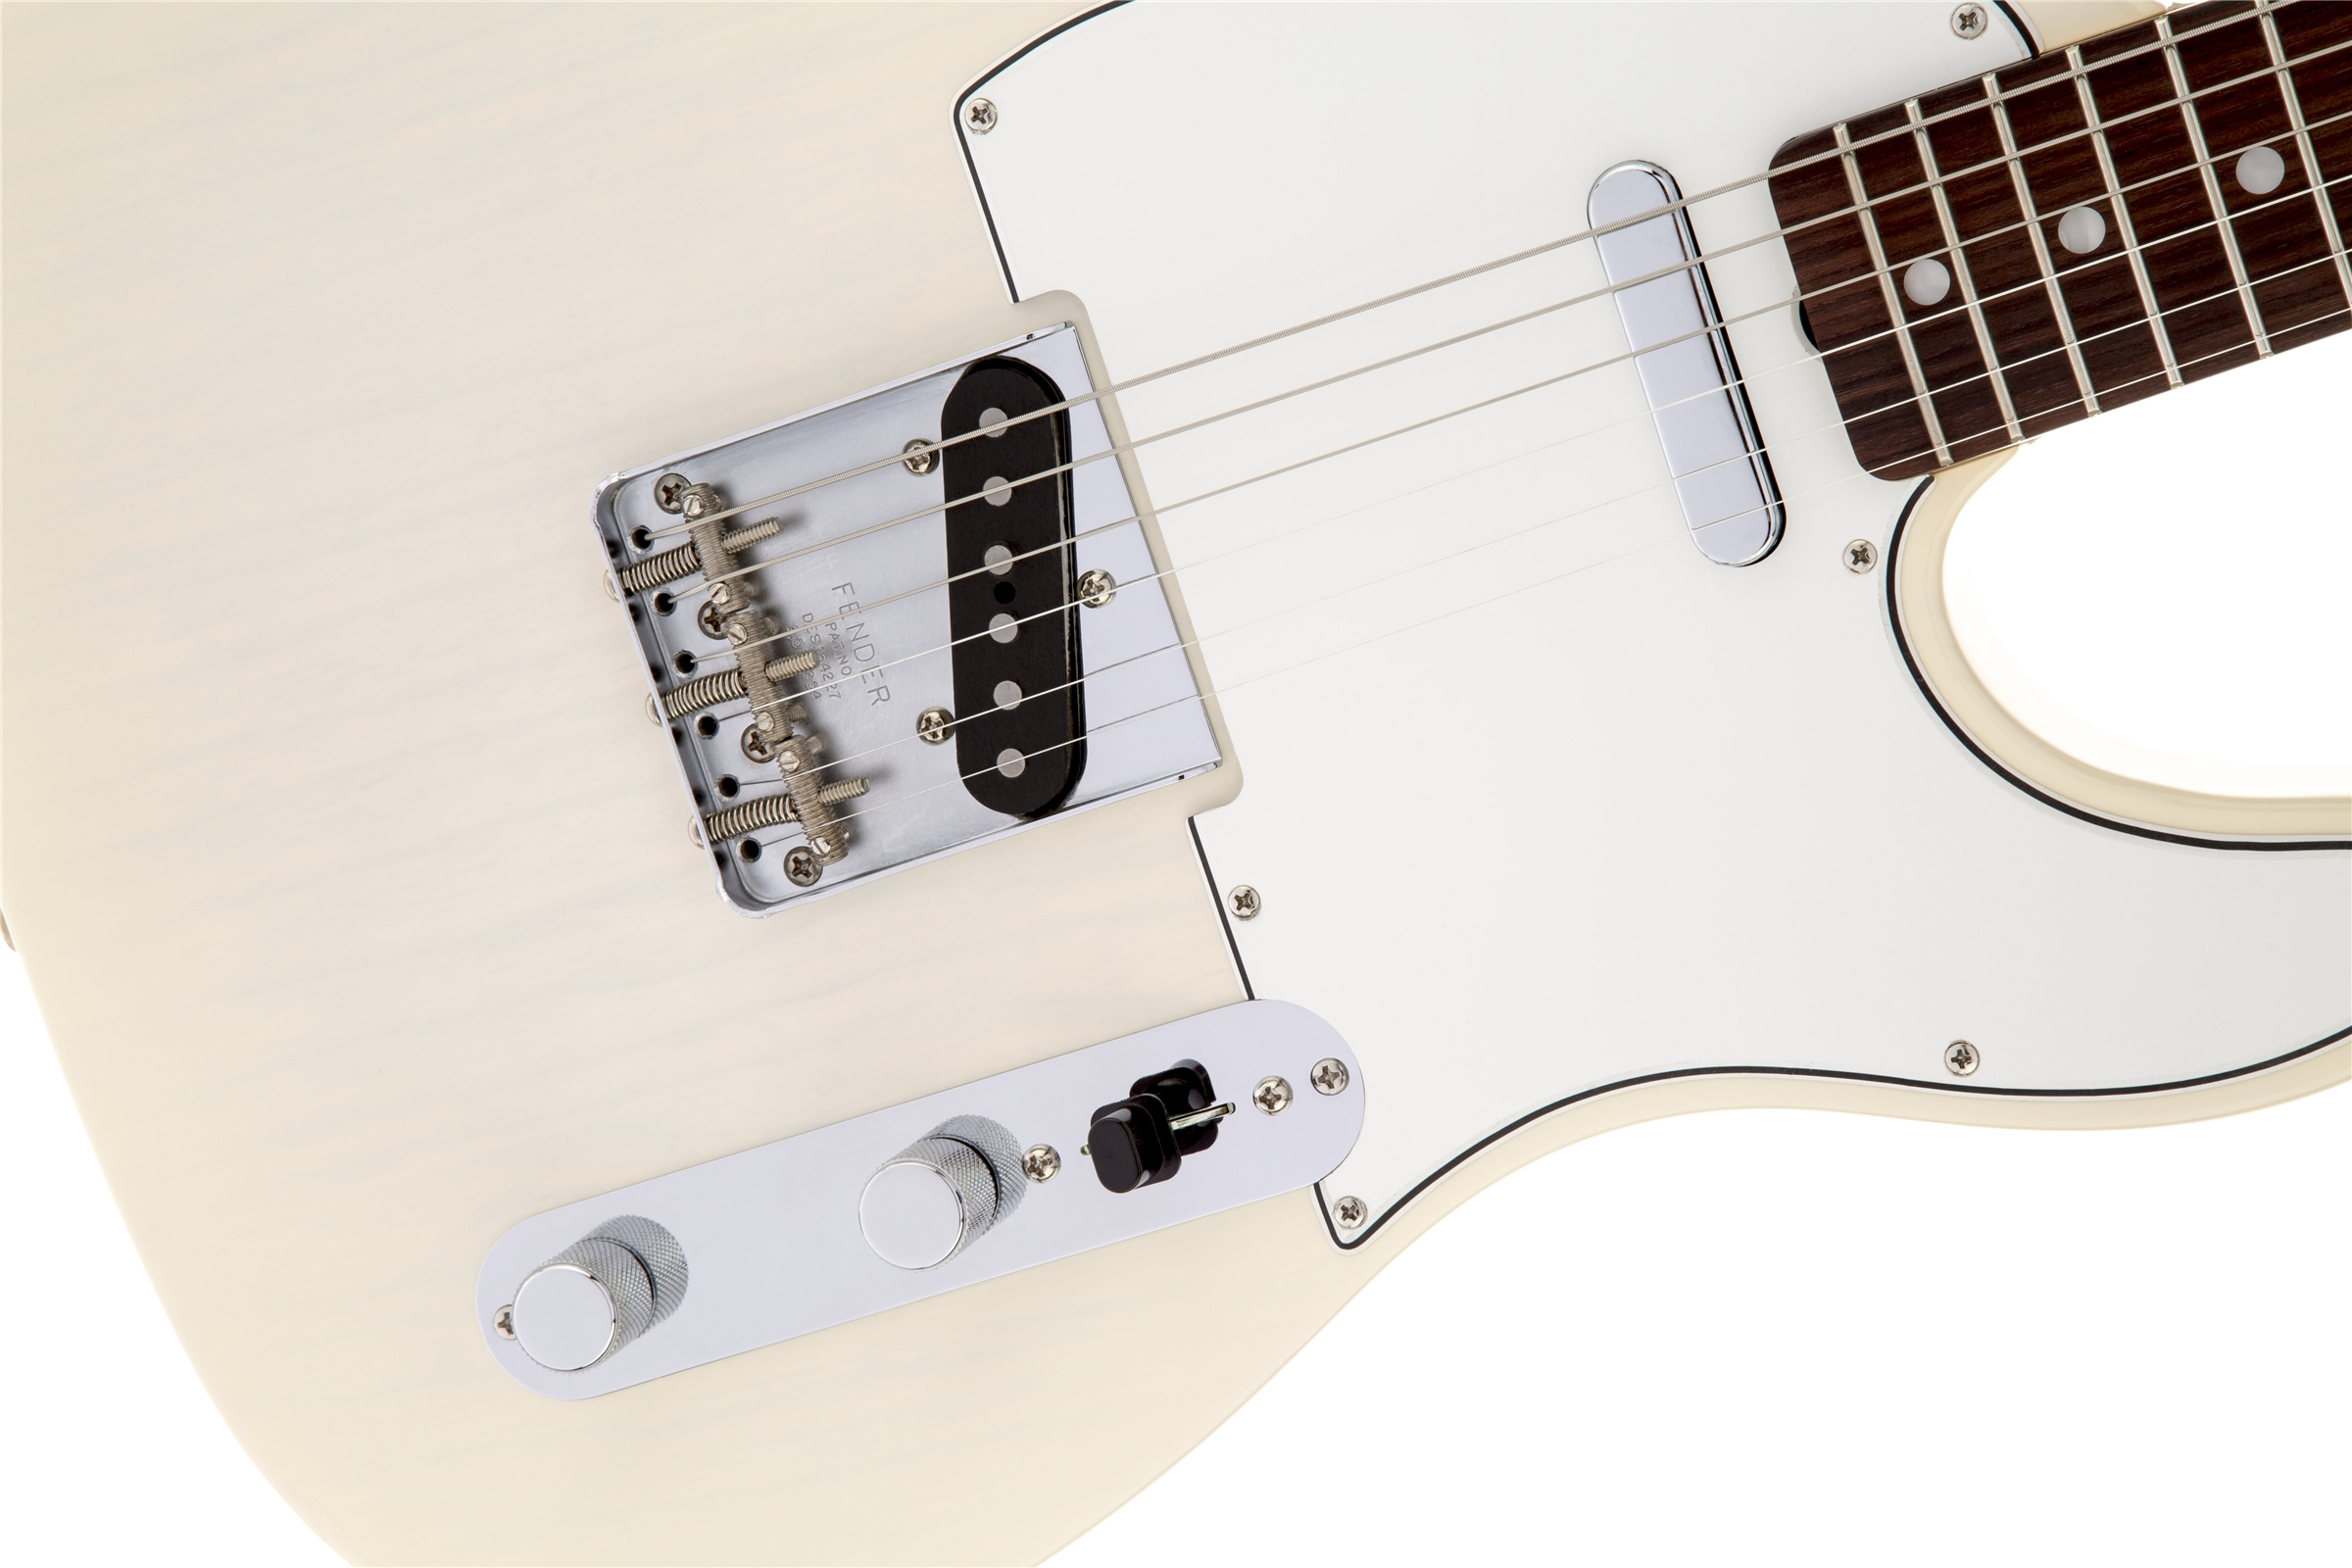 64 telecaster wiring diagram with description